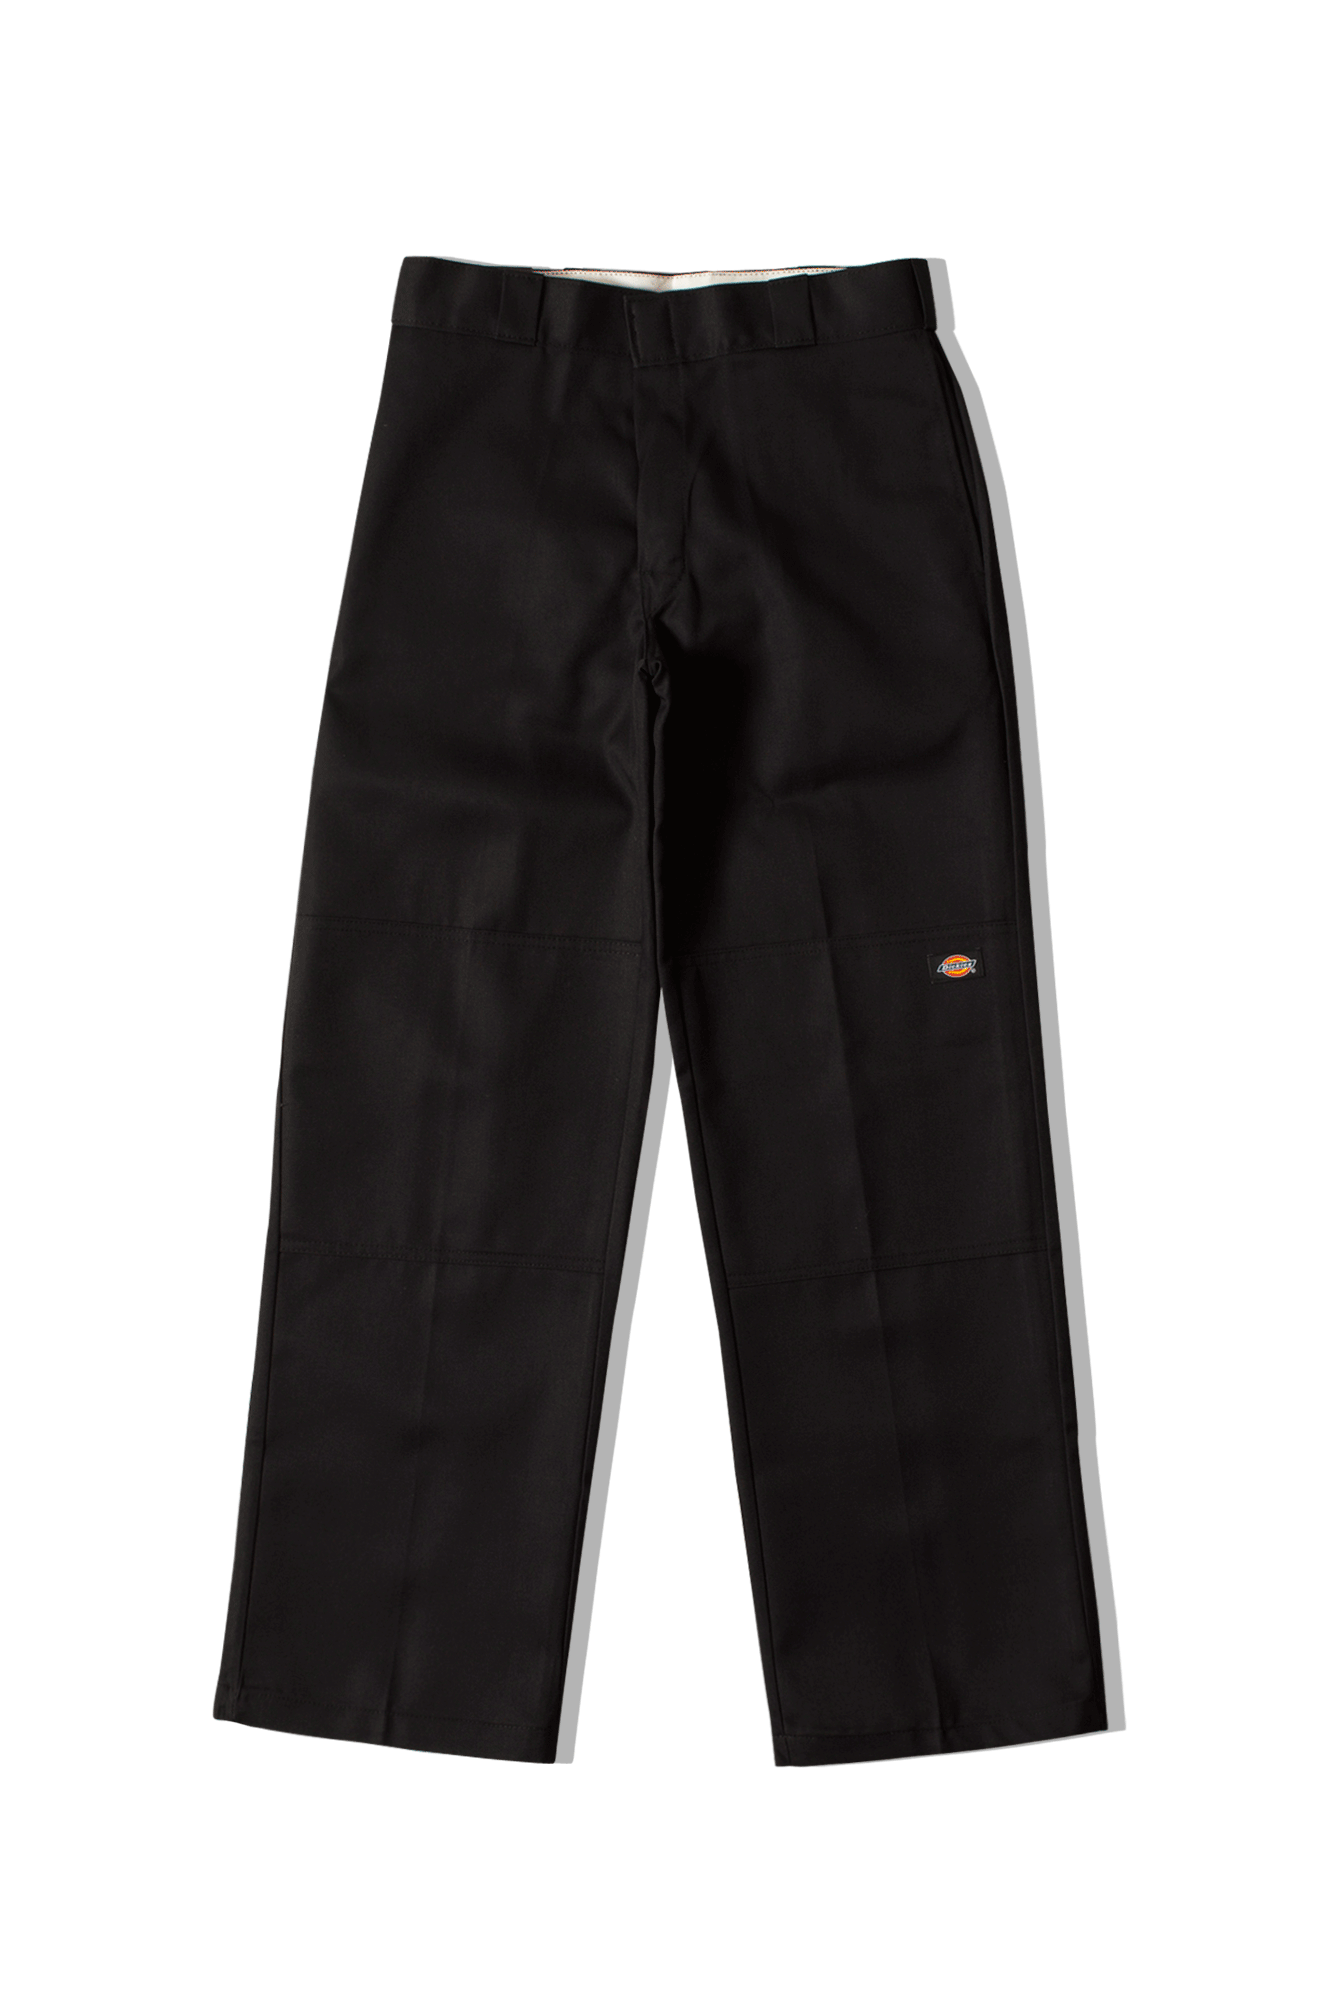 Dickies Trousers Double Knee Work Pant Black 684190022#000#BK#30/32 - One Block Down